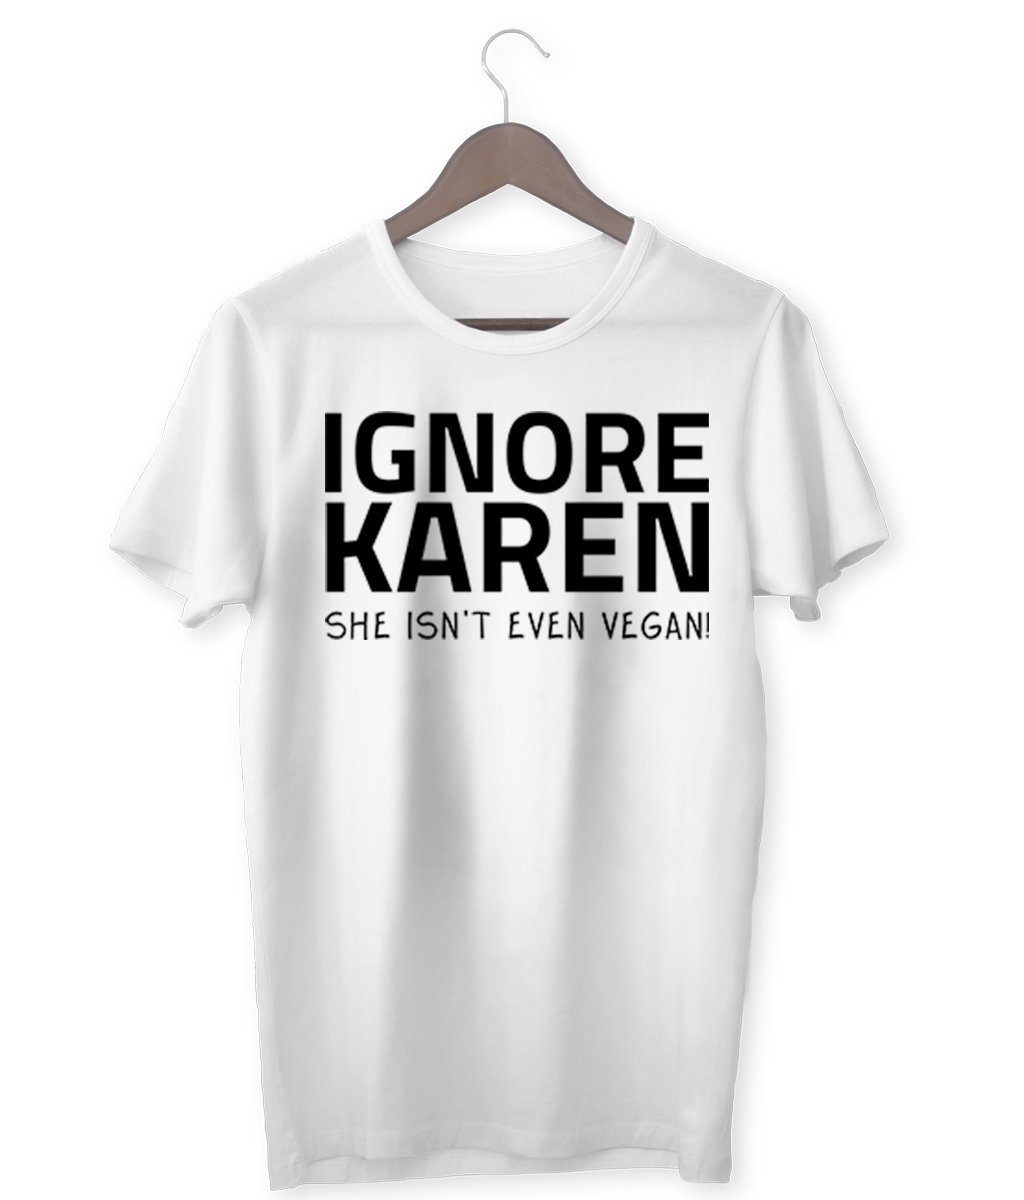 """Ignore Karen: She Isn't Even Vegan!"" - Those Vegan Guys T-Shirt (Unisex) - Light Colours Clothing Vegan Original"